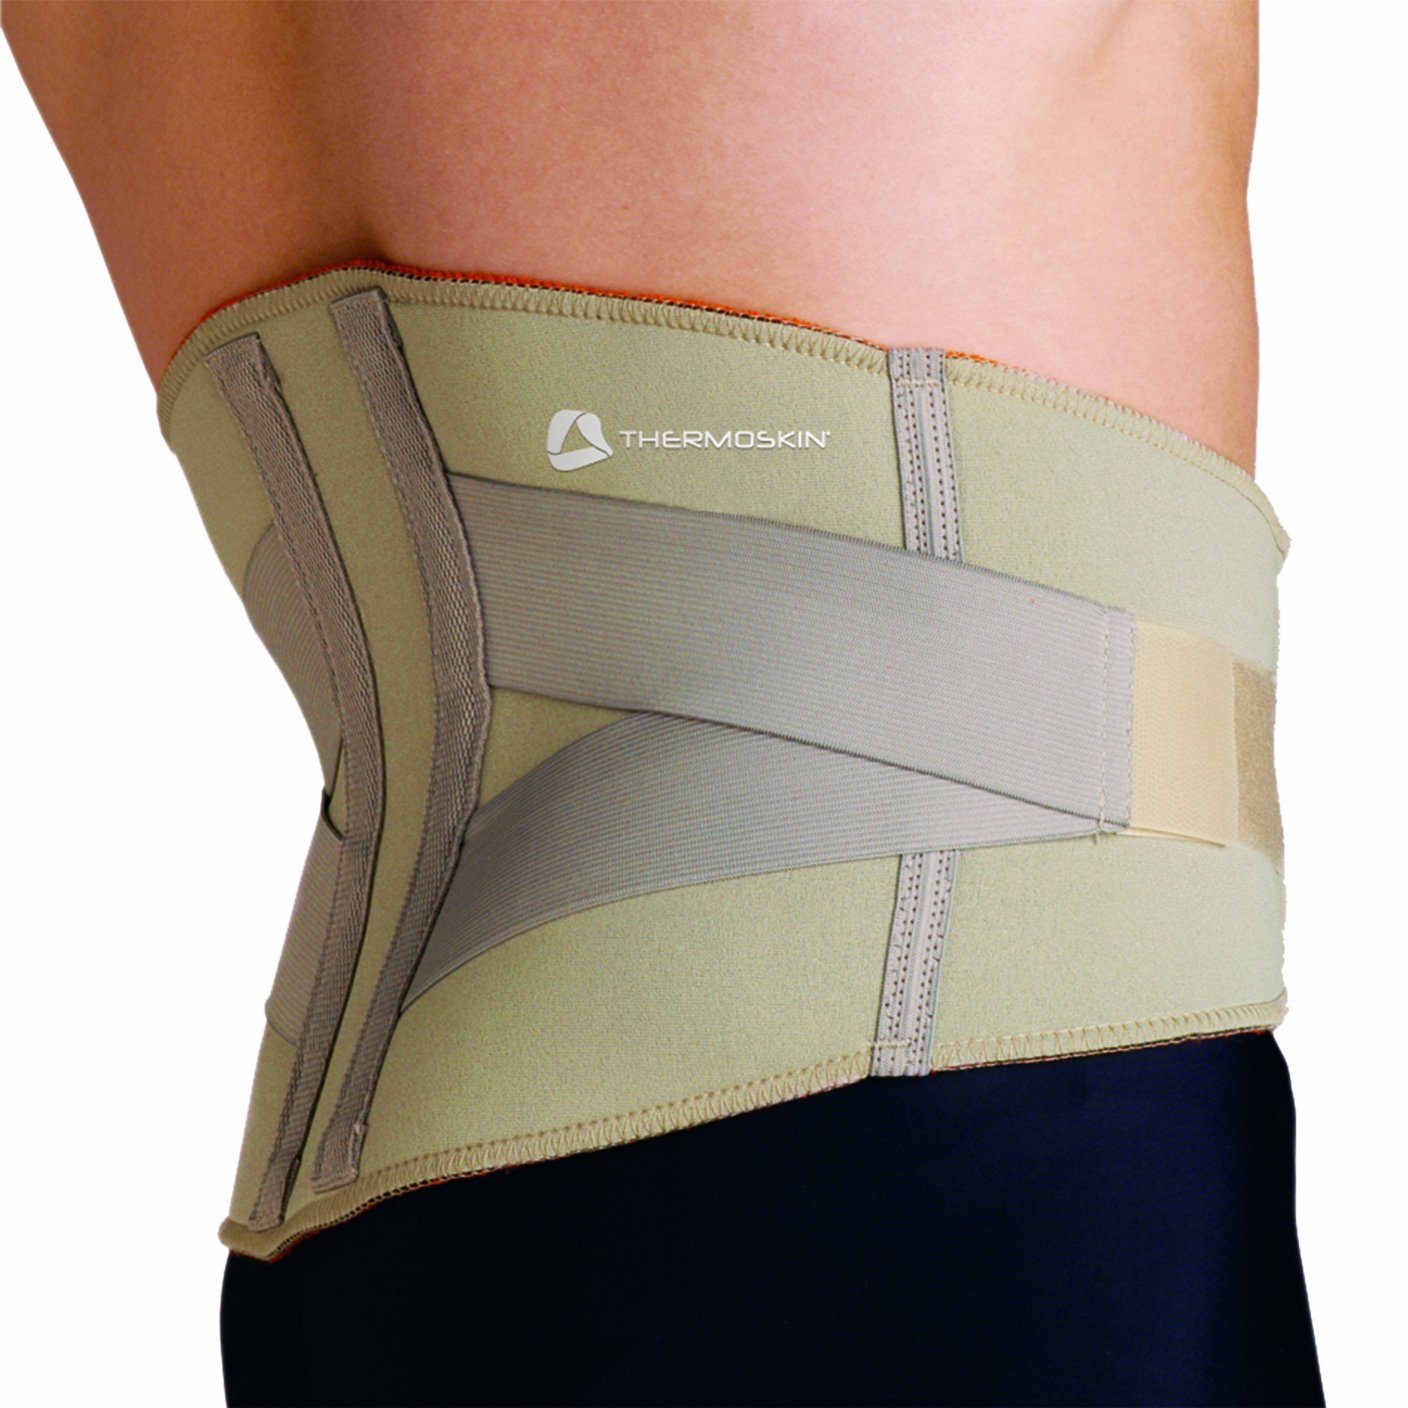 Thermoskin Lumbar Back Support, Beige, X-Small